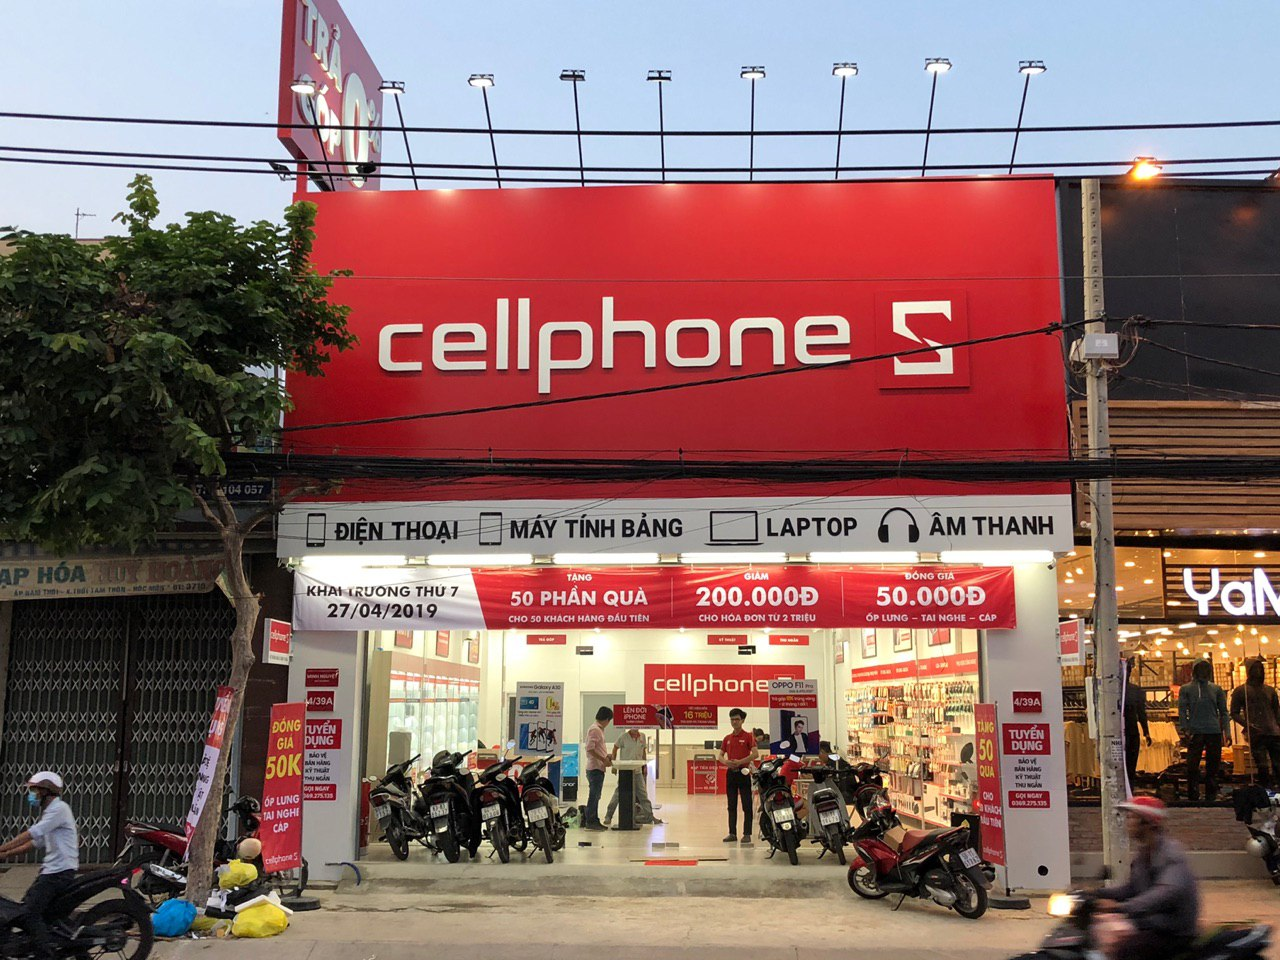 Many mobile stores lost 70% of sales due to the Covid-19 epidemic